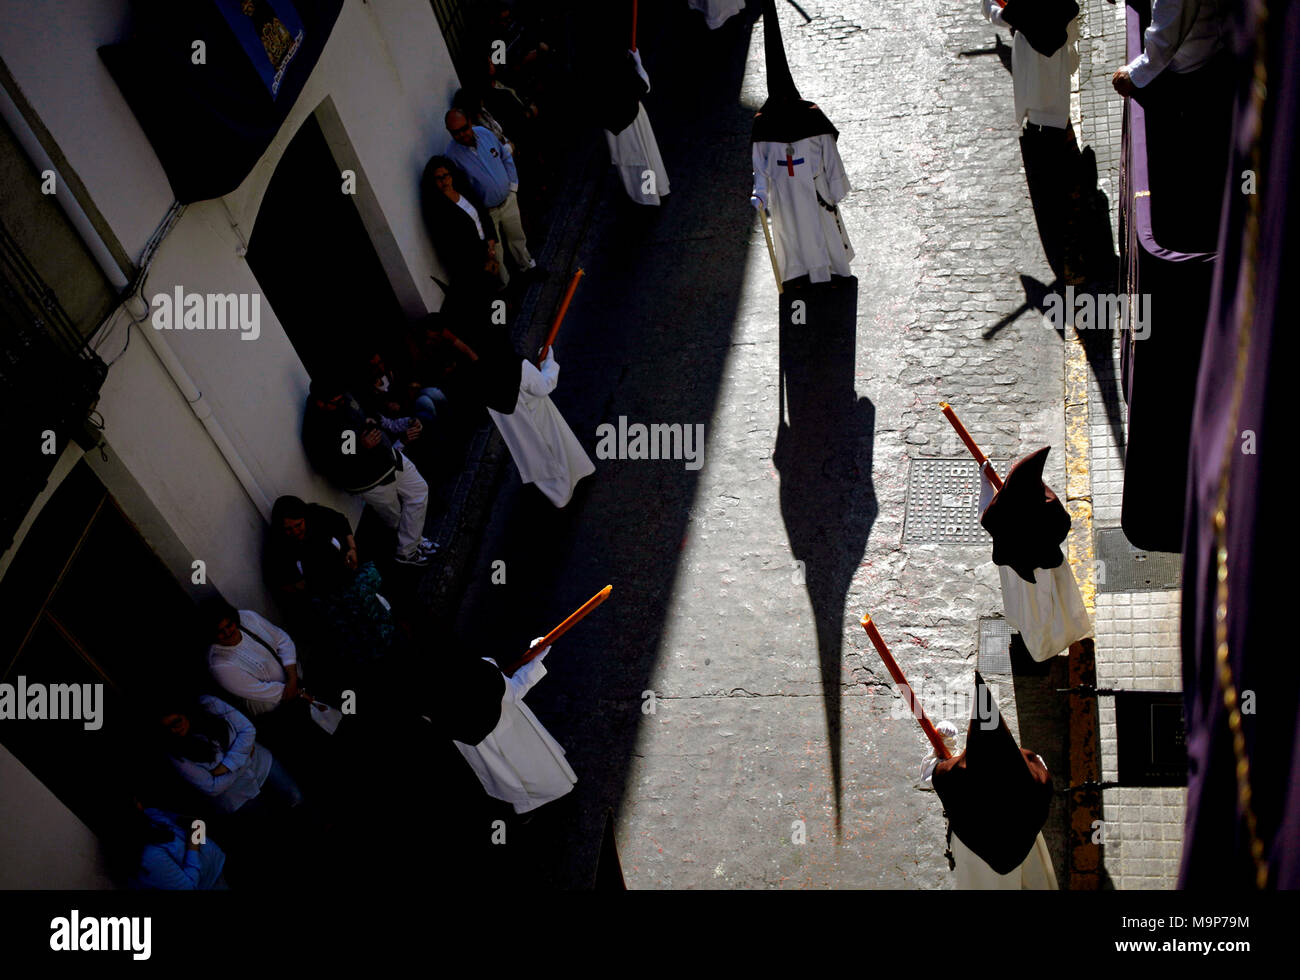 Shadow of penitente during Easter Week celebrations in Baeza, Jaen Province, Andalusia, Spain - Stock Image